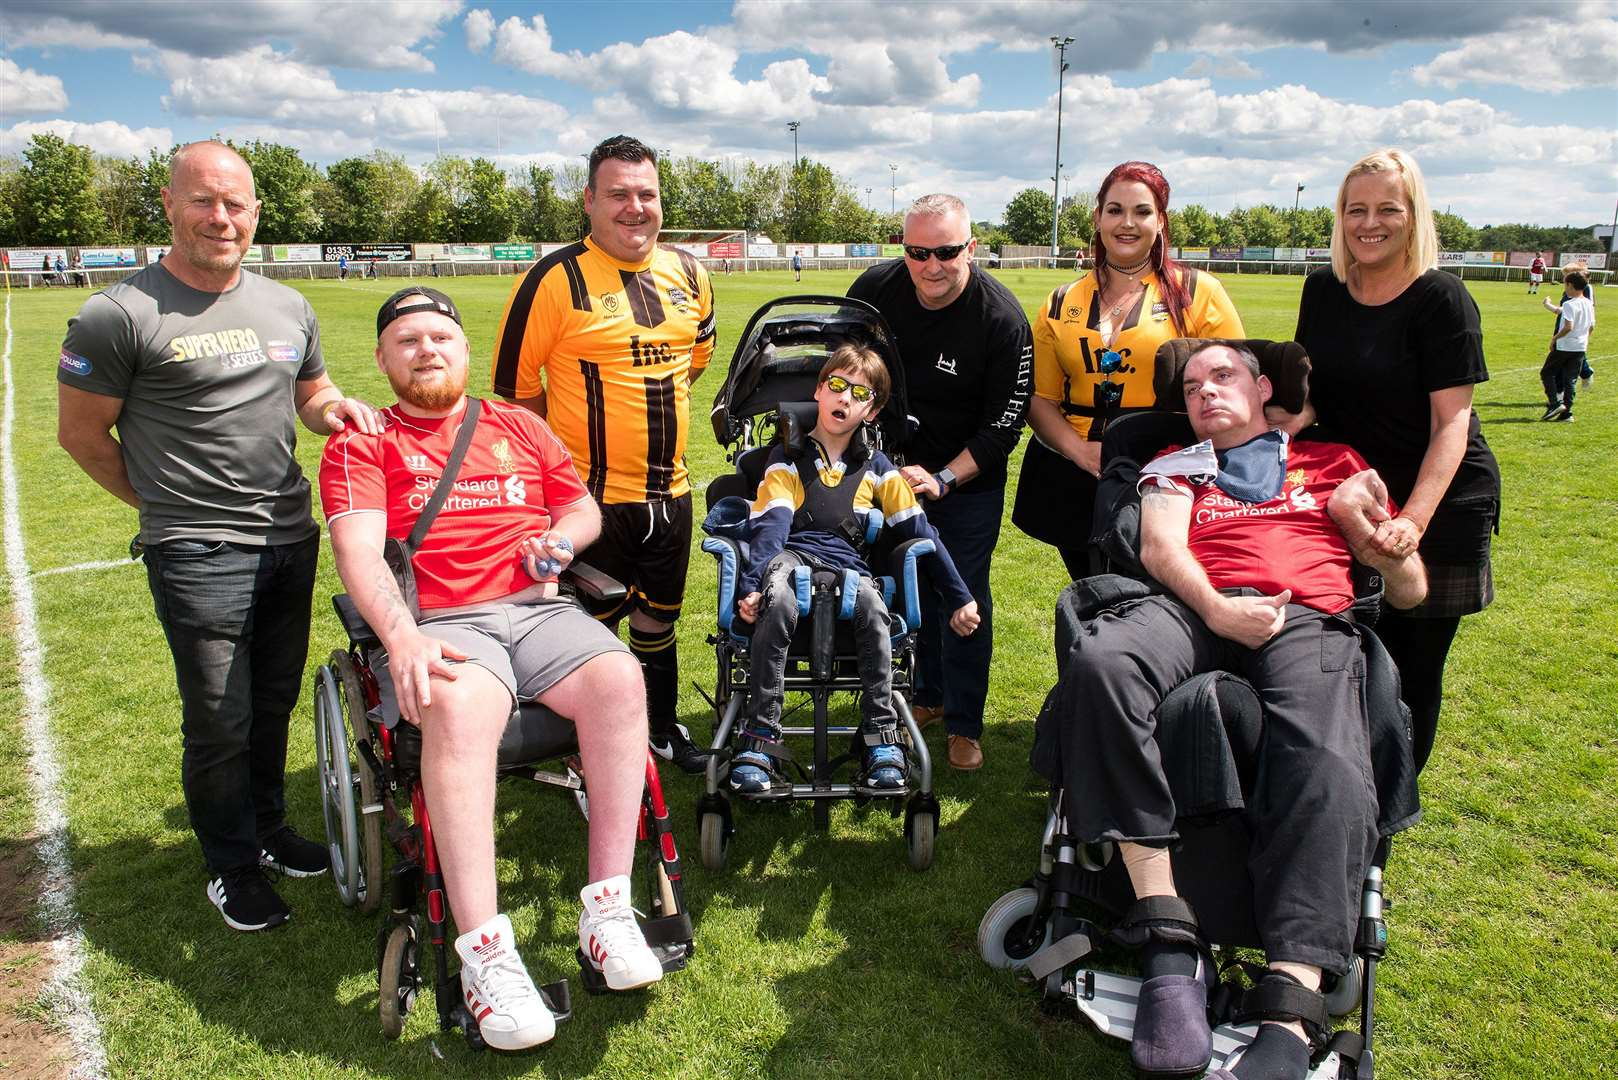 Ely City Football Club Cambridge United and Fans v Arsenal Charity Team supporting Simon Dobbin, Ryan Smith foundation and Owen Coleman. organisers Dave Boughtwood Eason and Beth Boughtwood-Eason, Ady and Owen Coleman, and Simon and Nicole Dobbin Picture Mark Westley (10363016)